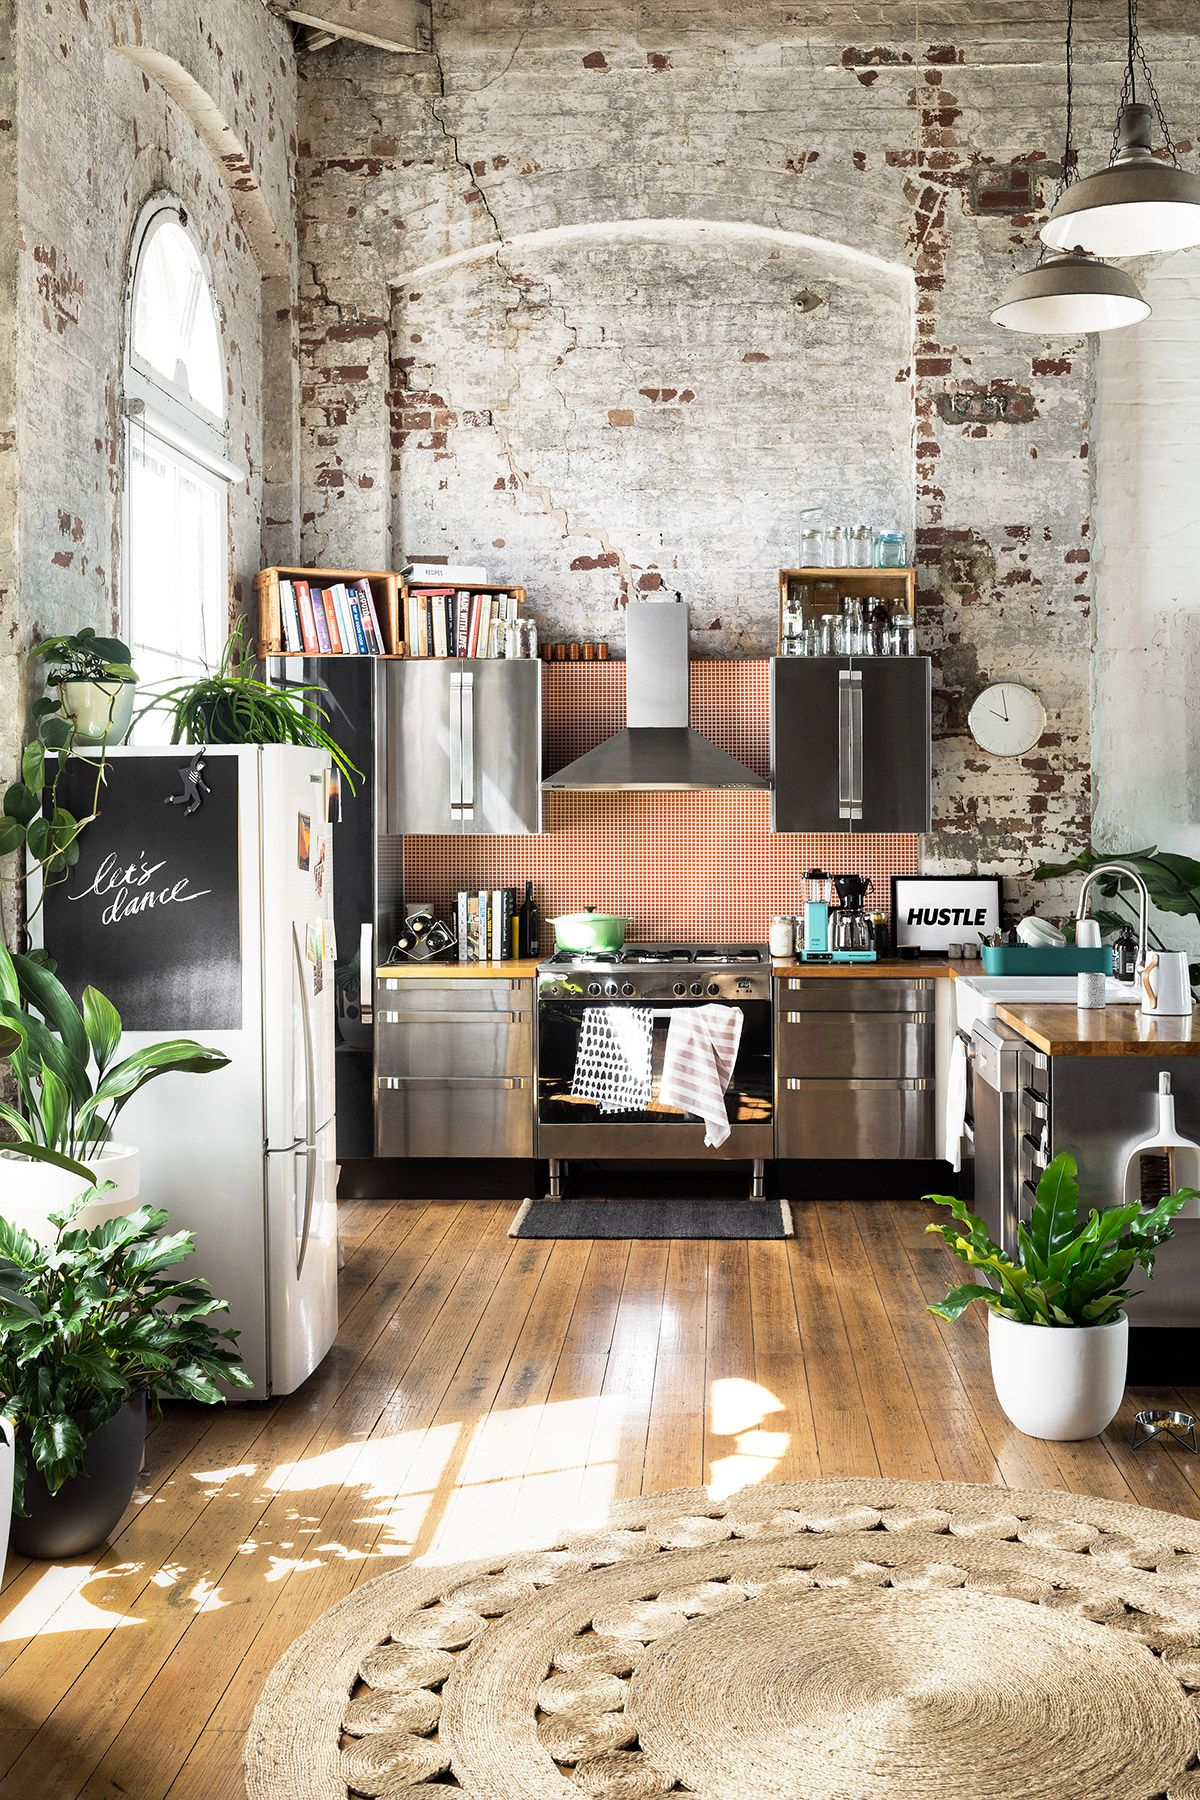 Apartments With Exposed Brick Gravity Home Kitchen With Exposed Brick In A Warehouse